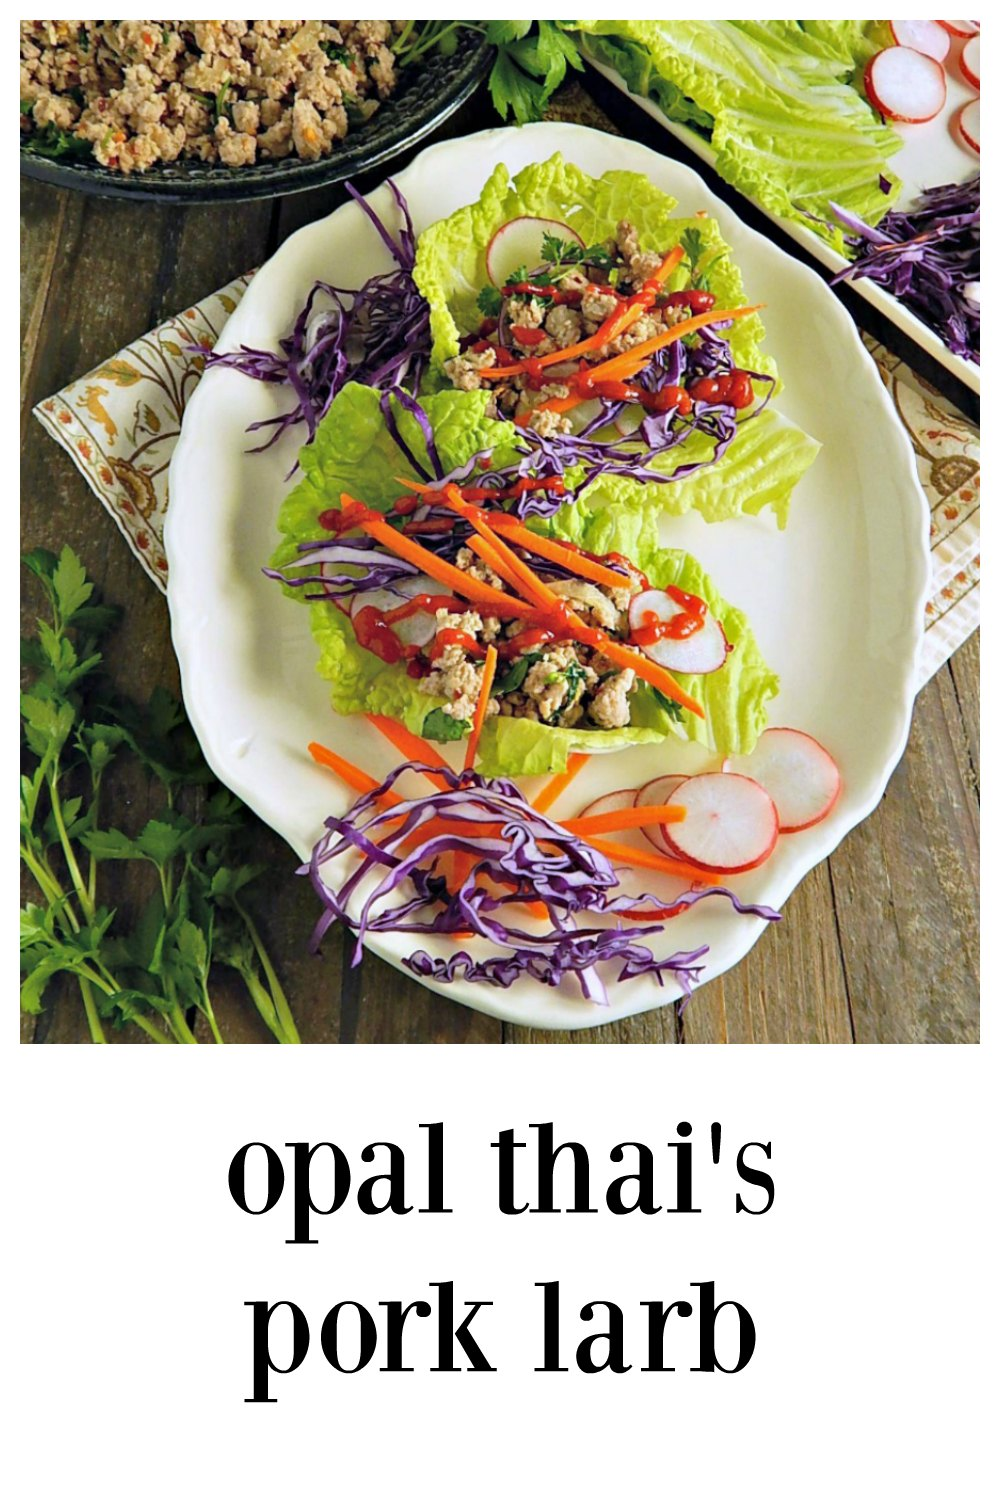 Opal Thai's Pork Larb Lettuce Wraps, as seen on Diner's Drive-Ins & Dives. An easy fun way to get in your veggies. Best wraps, ever! Uses good, sturdy veggies that keep well. #LettuceWraps #PorkLarb #OpalThai #PorkLaab #OpalThaiPorkLarb